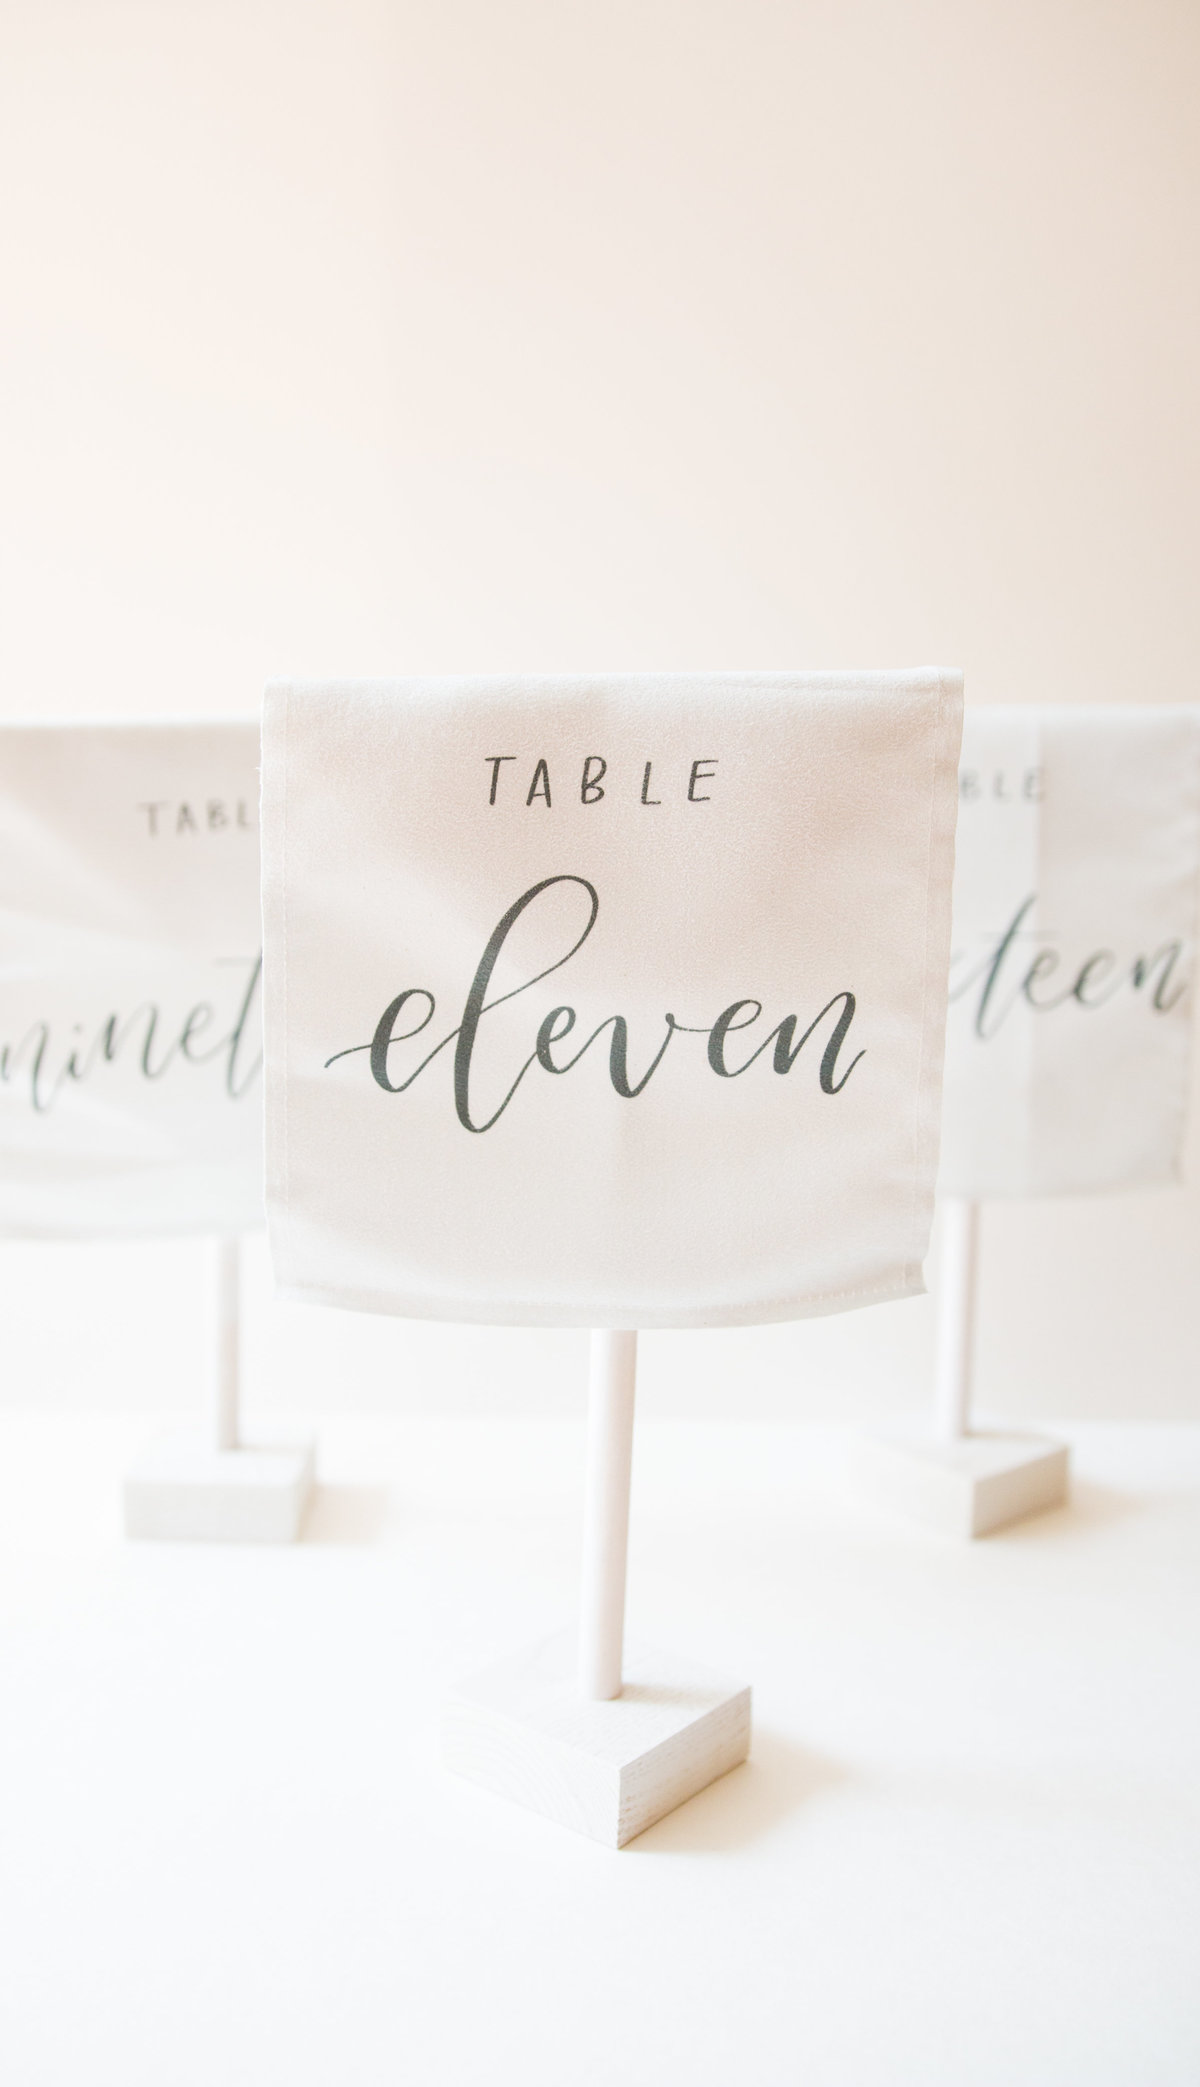 White self standing velvet table numbers for weddings or events through Hue + FA rentals